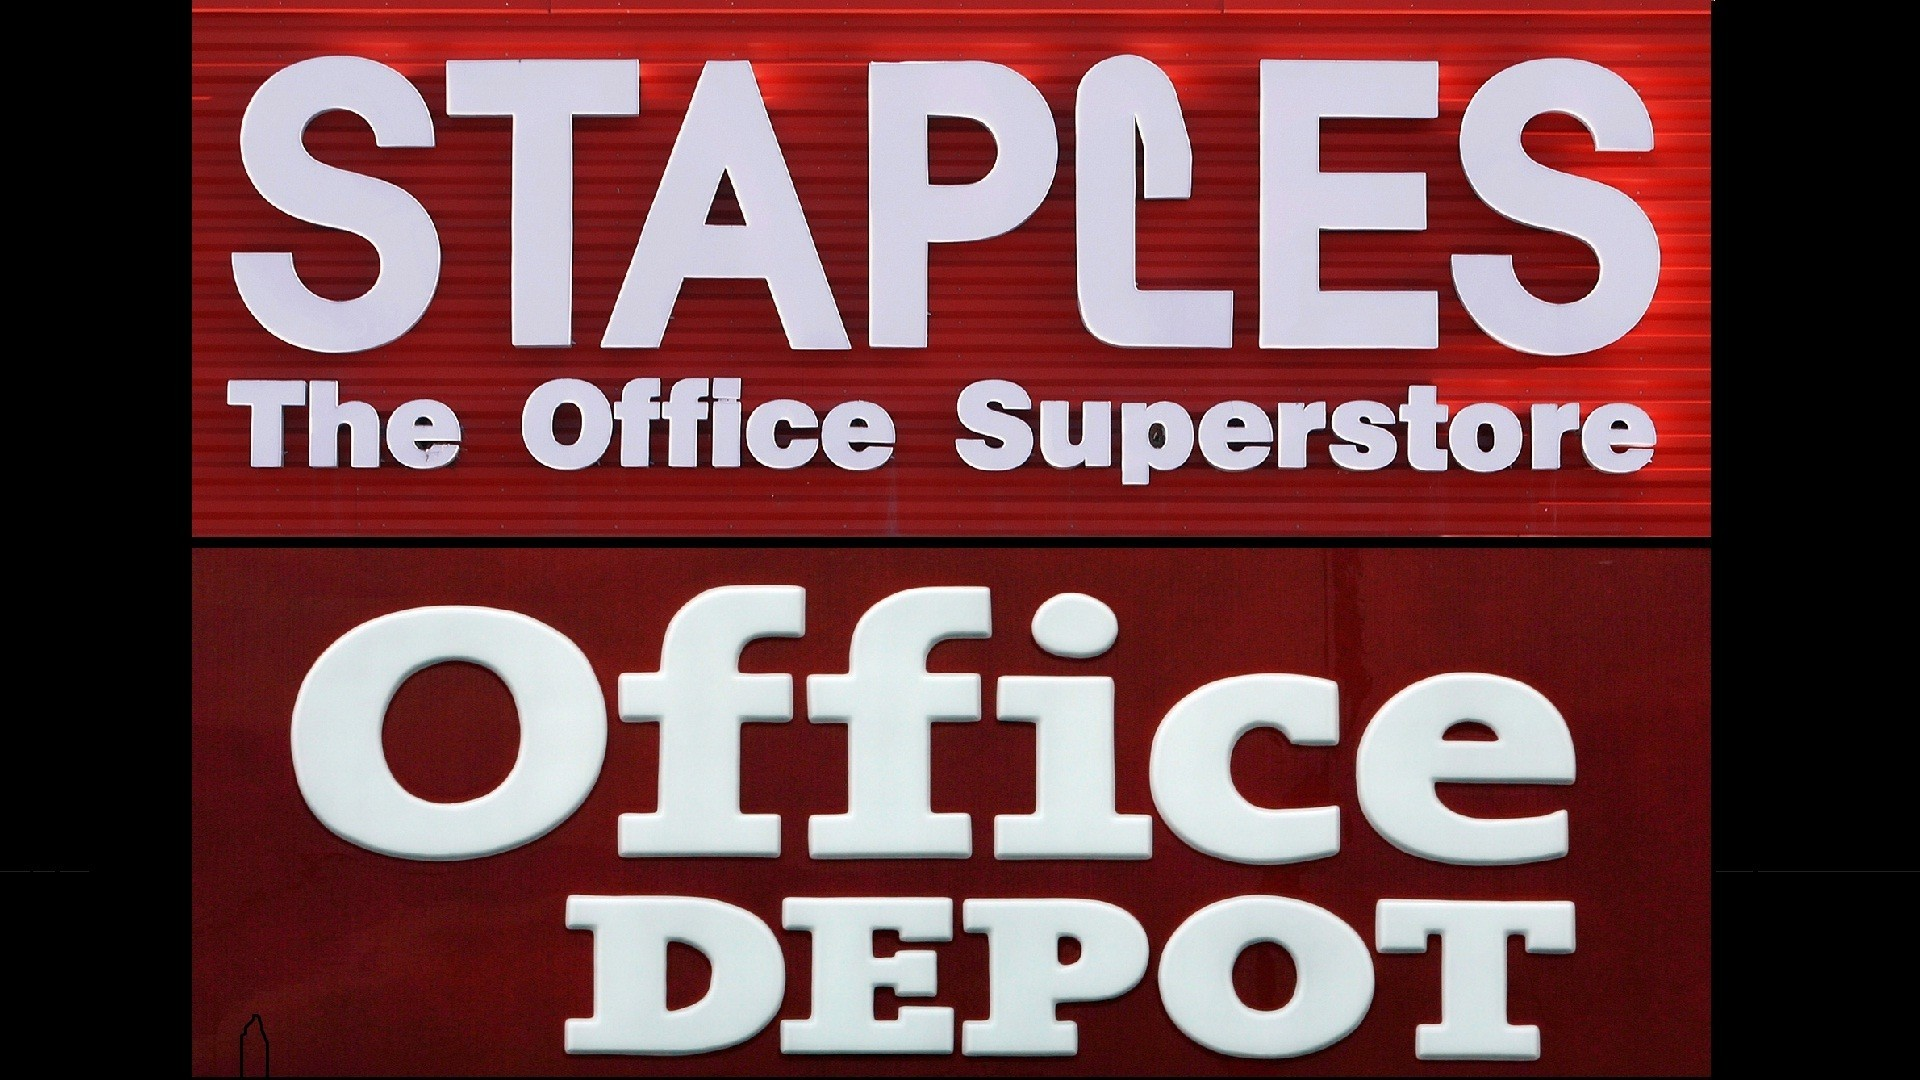 fice Depots survival in question if merger with Staples fails